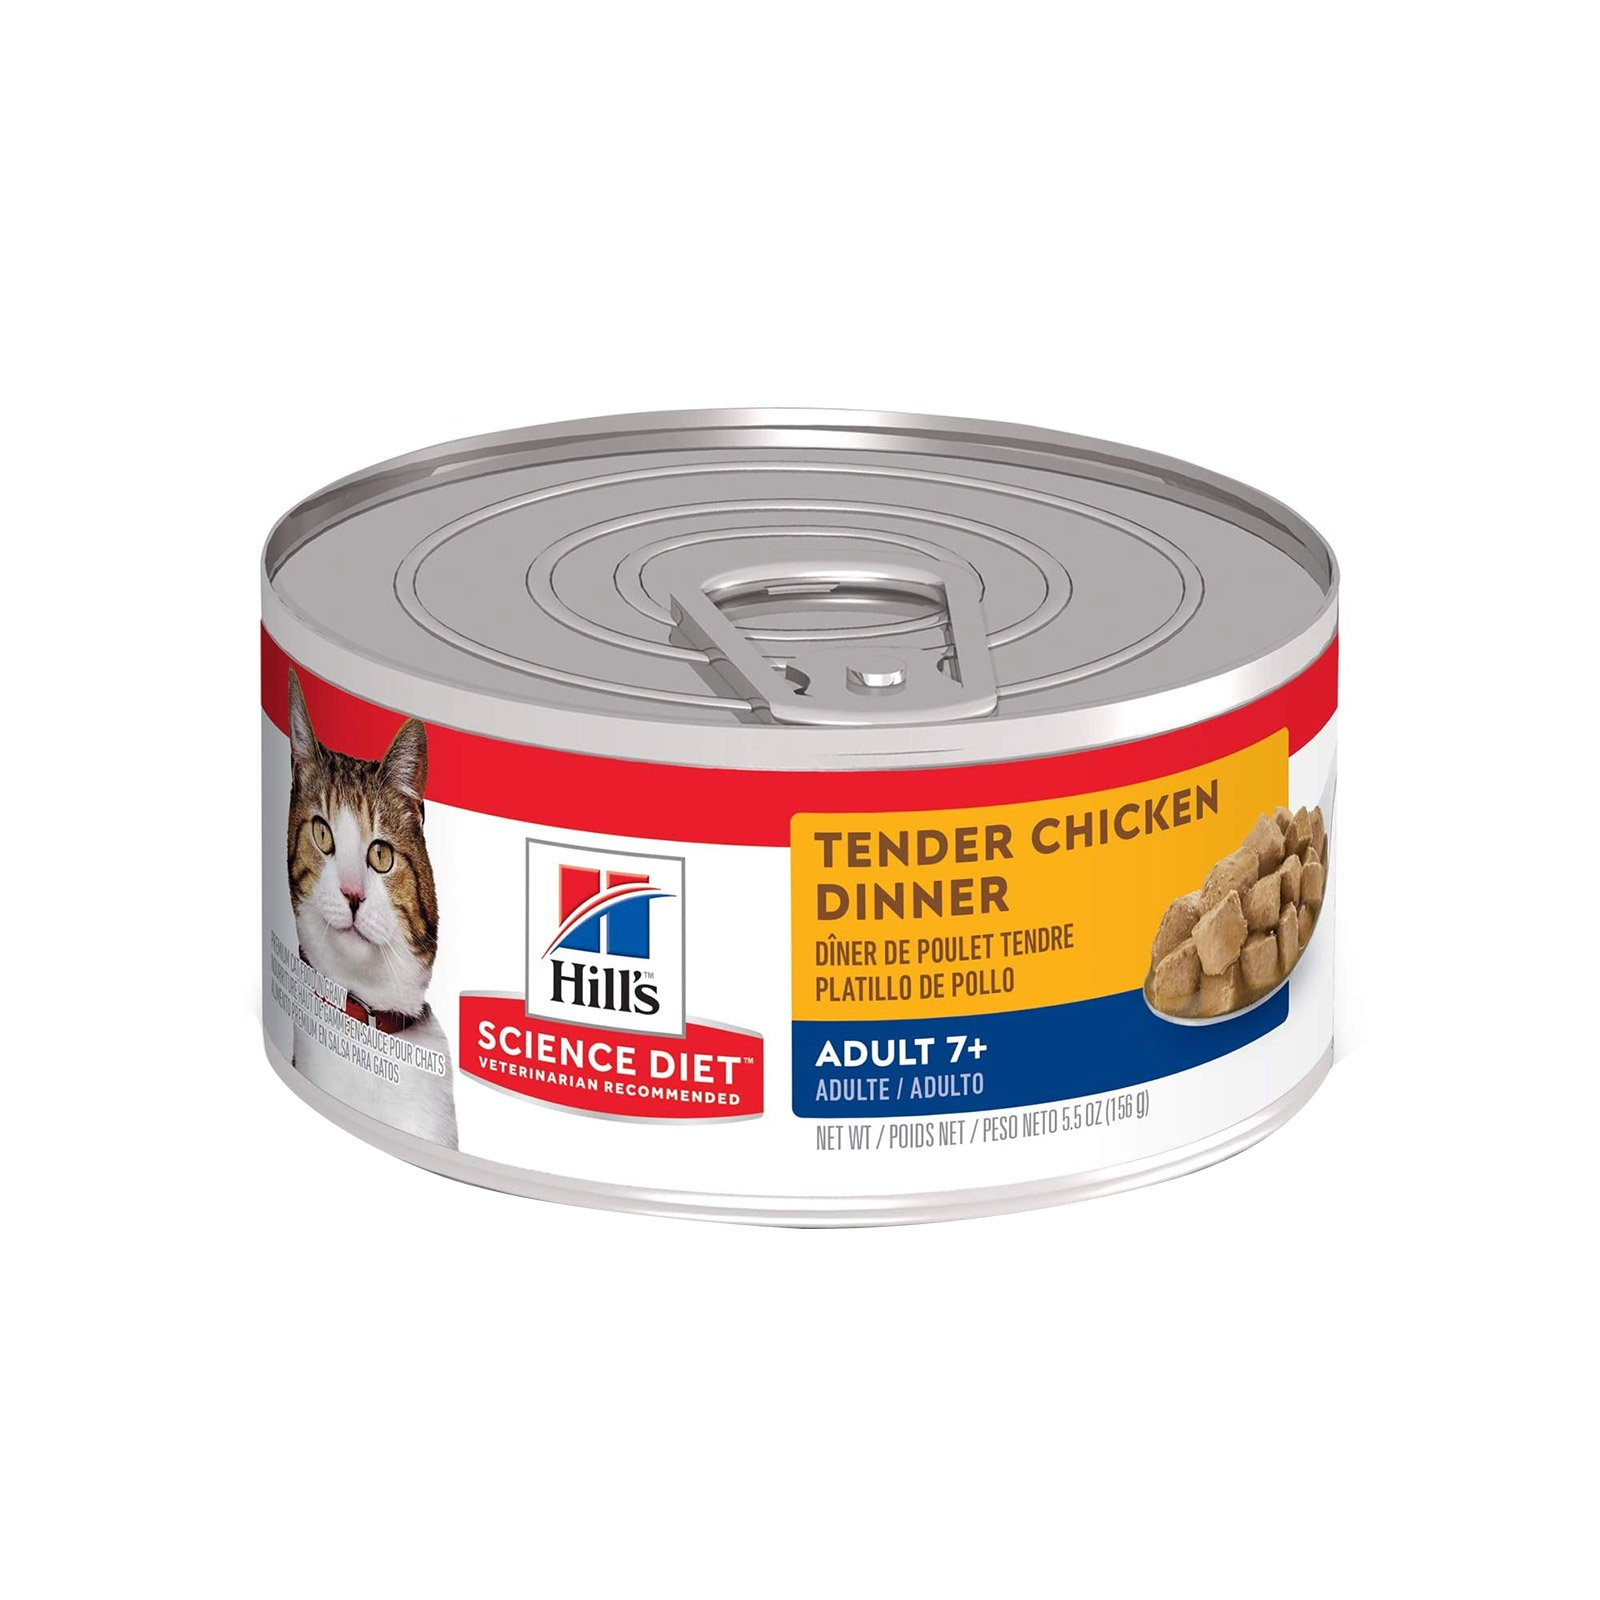 Hill's Science Diet Adult 7+ Tender Dinners Chicken Canned Cat Food  79 Gm